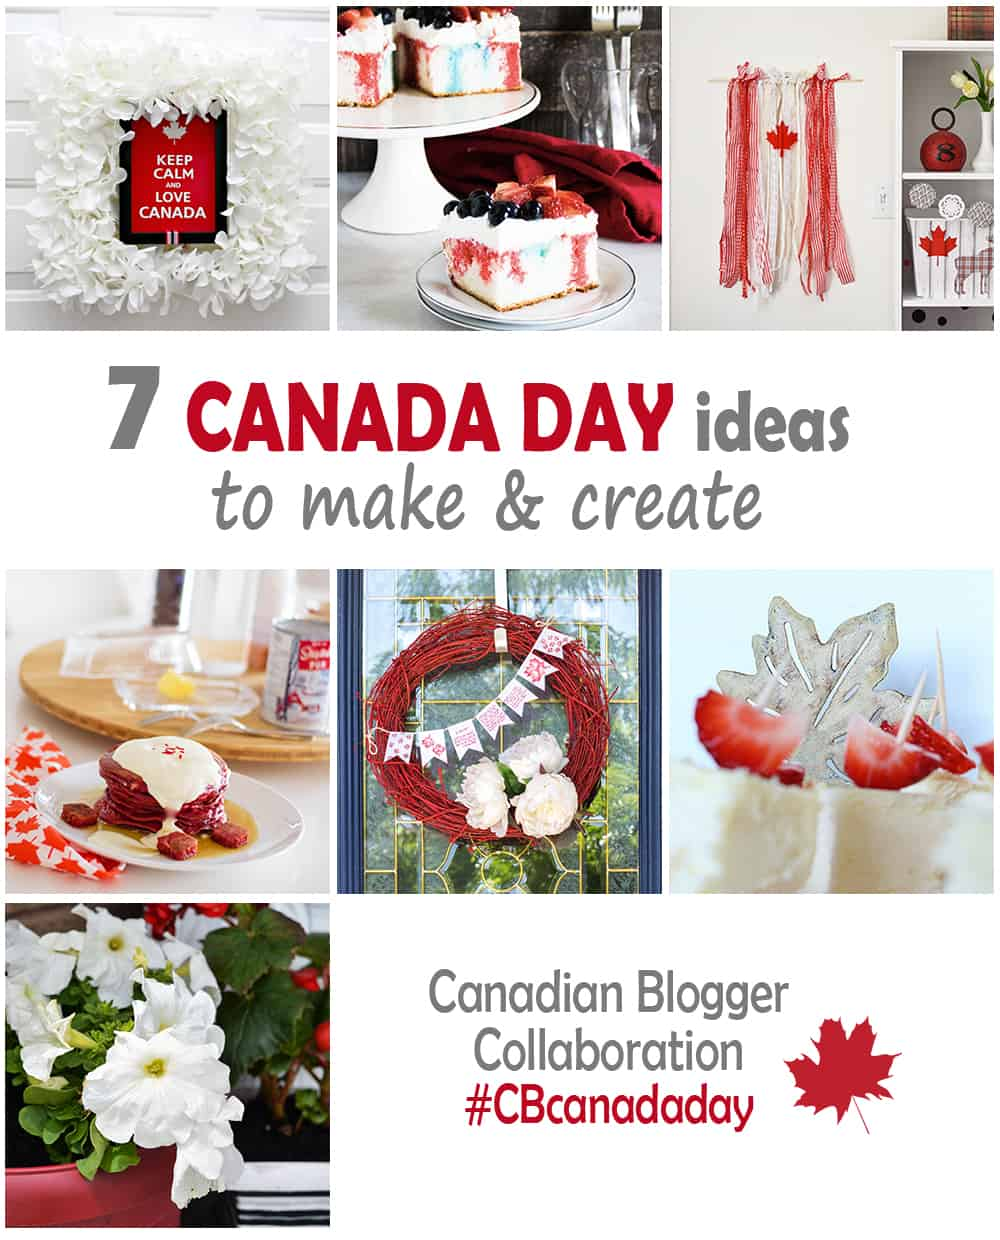 Canada Day ideas to make and create.